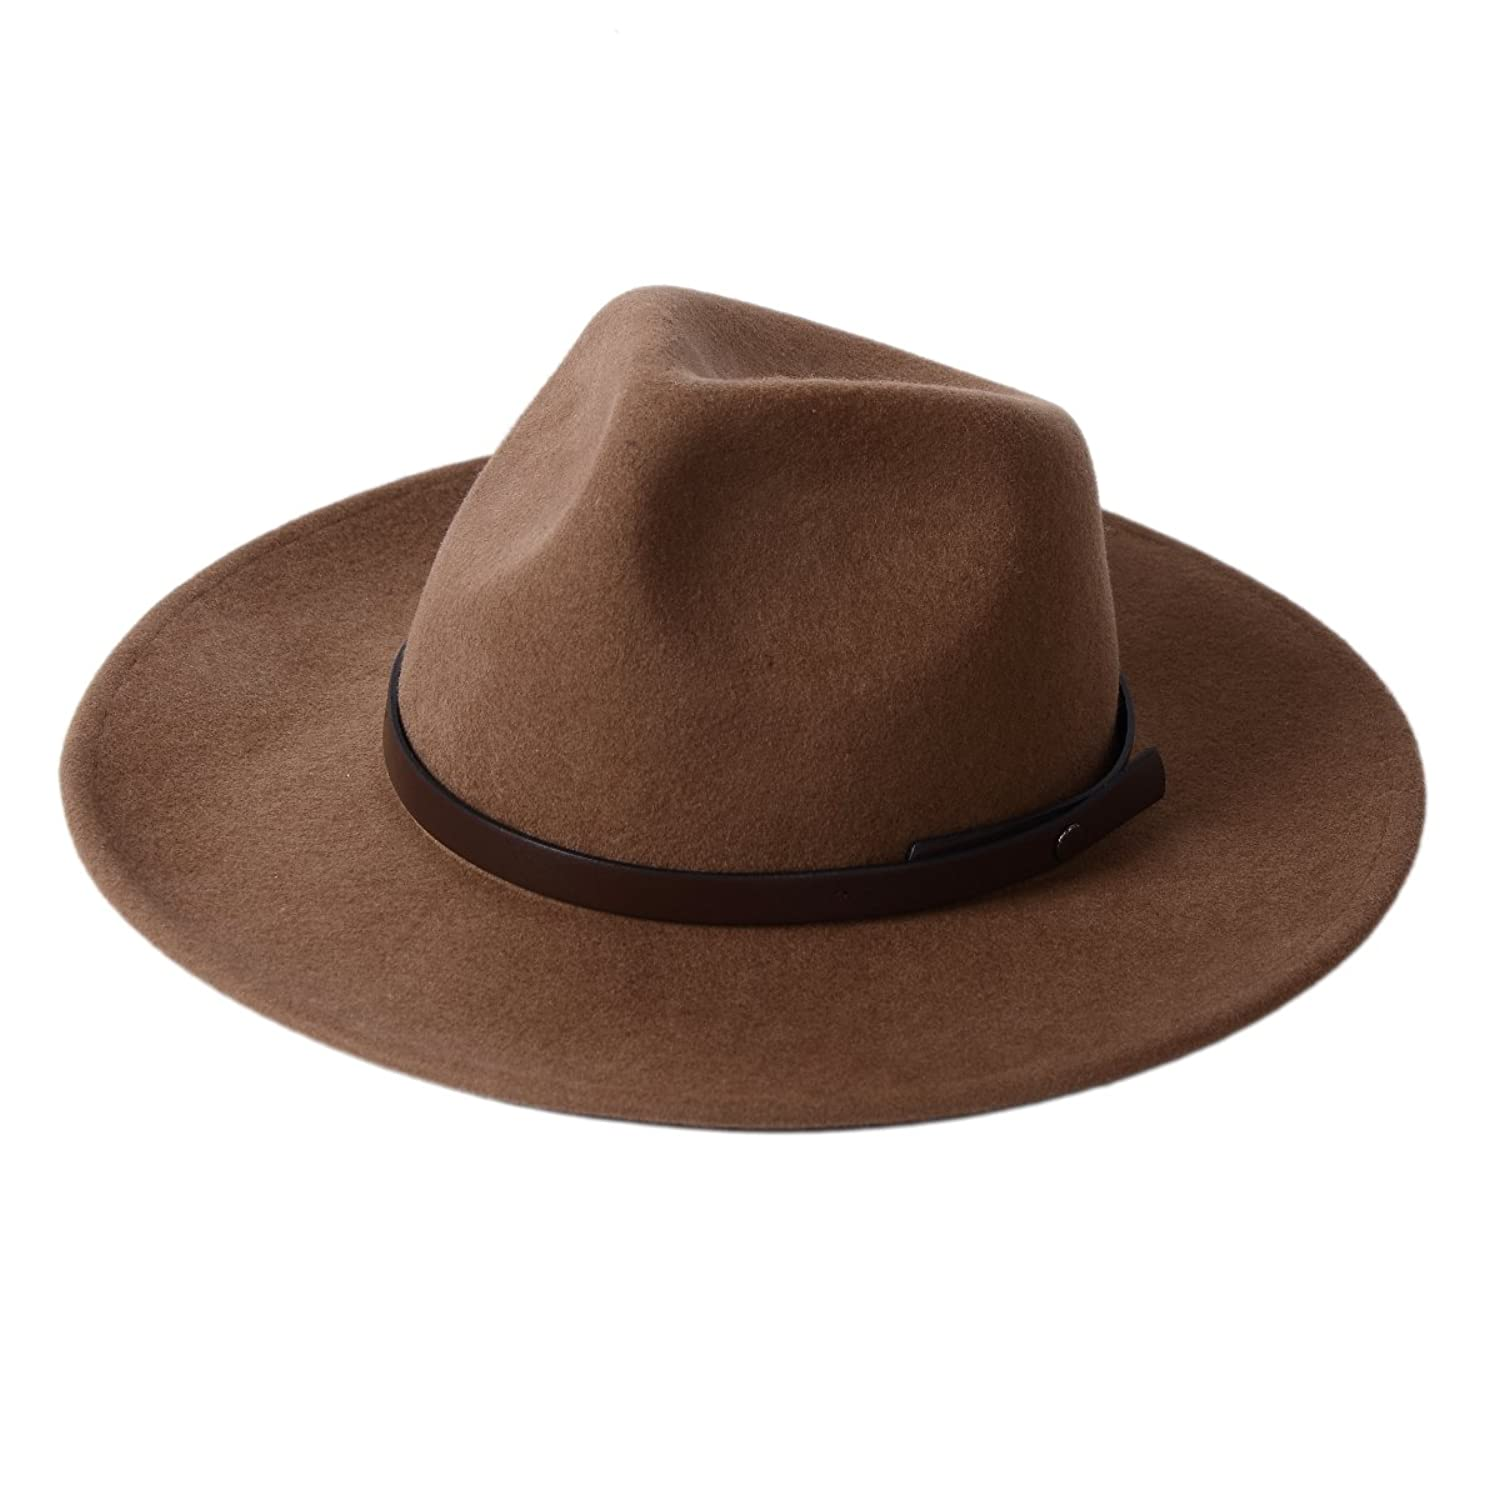 58c8938790be4 Western Cowboy Hat-Wool Fedora Felt Hats Men Women Crushable Wide Brim  Trilby